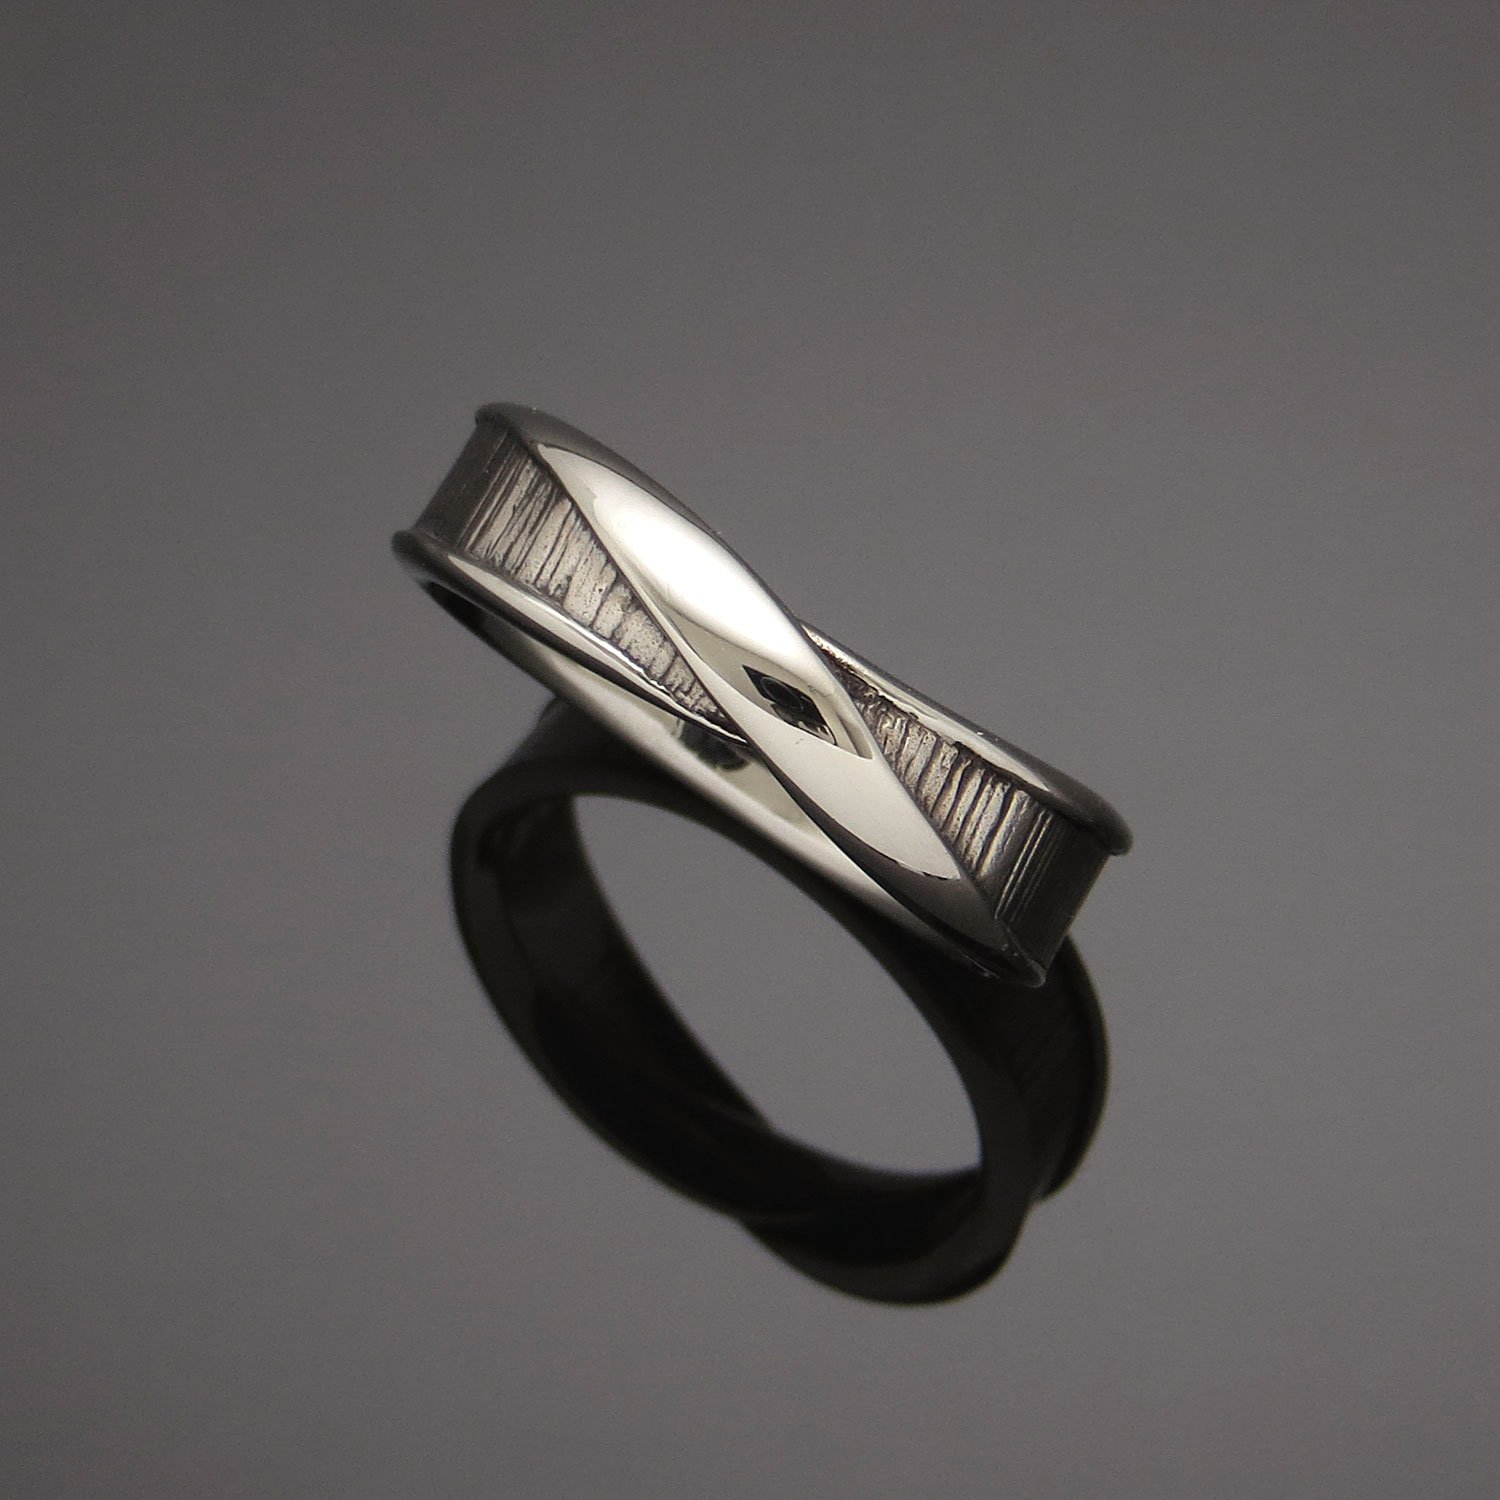 Custom Men's Mobius wedding band